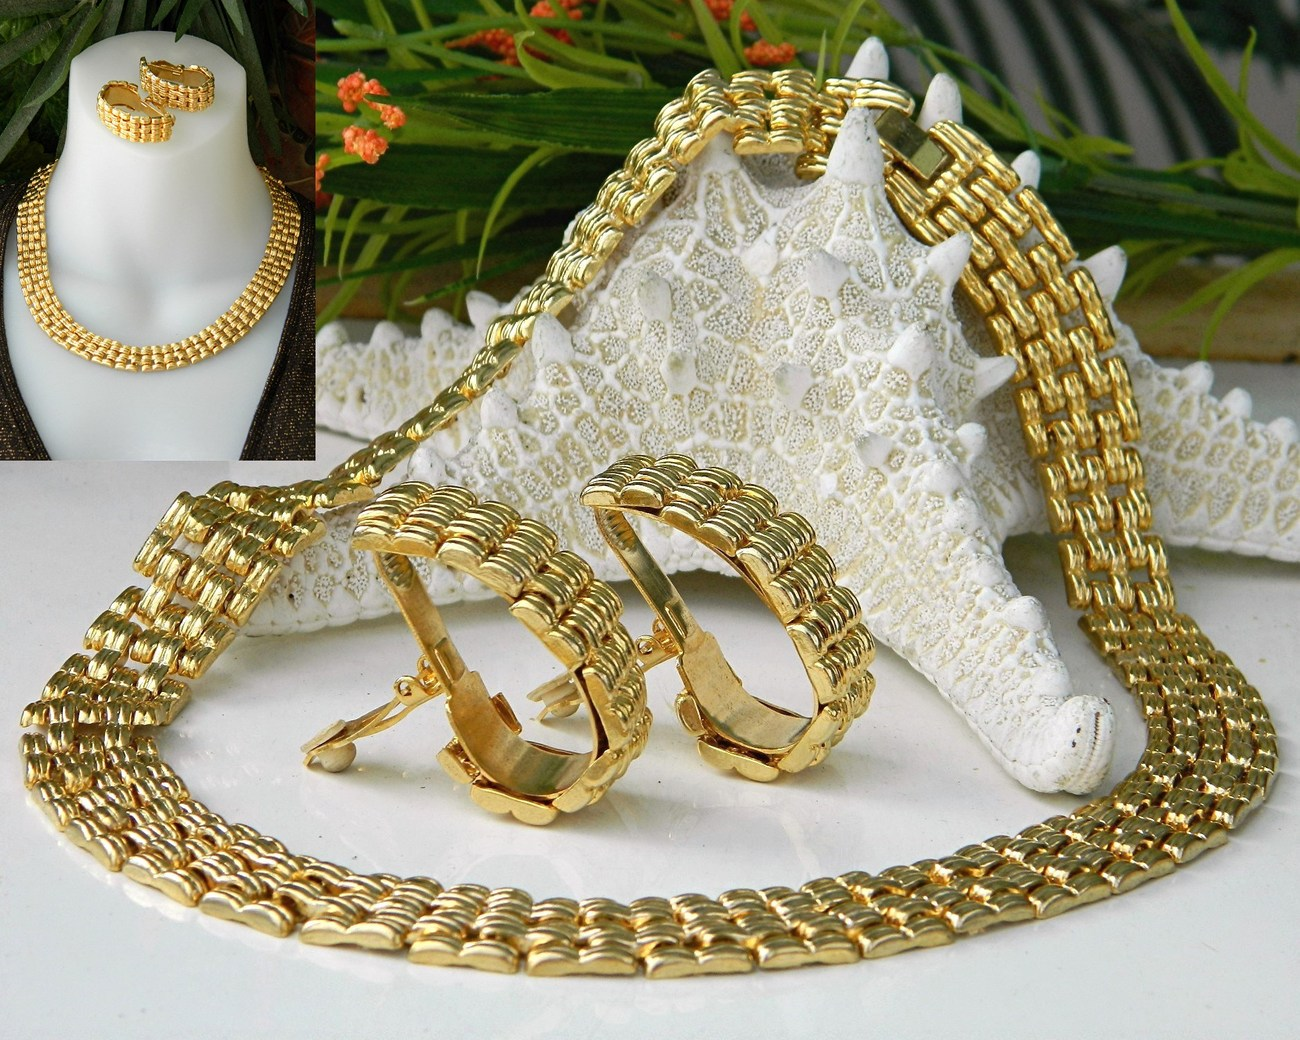 Vintage Collar Choker Necklace Earrings Gold Tone